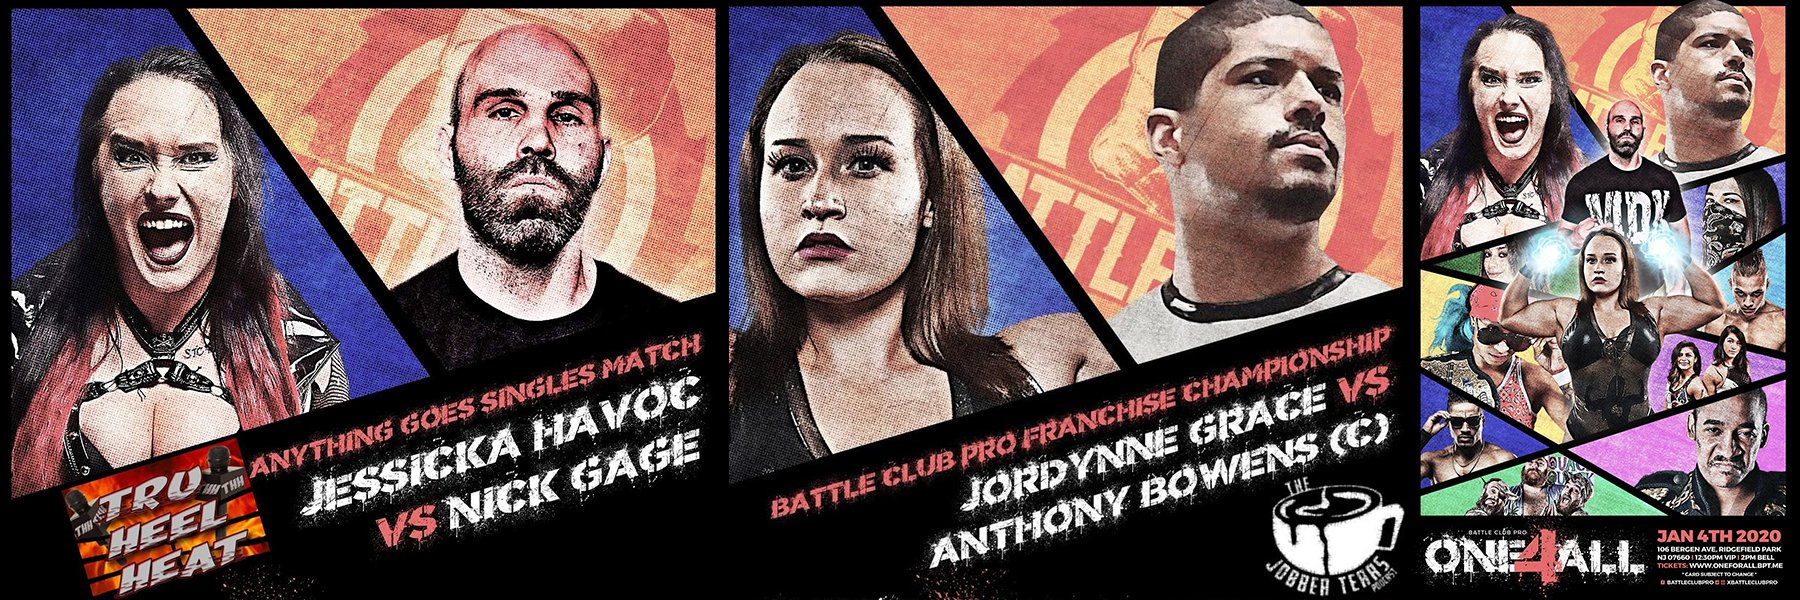 "Just Added! Battle Club Pro ""One 4 All"" - Jordynne Grace vs Anthony Bowens"